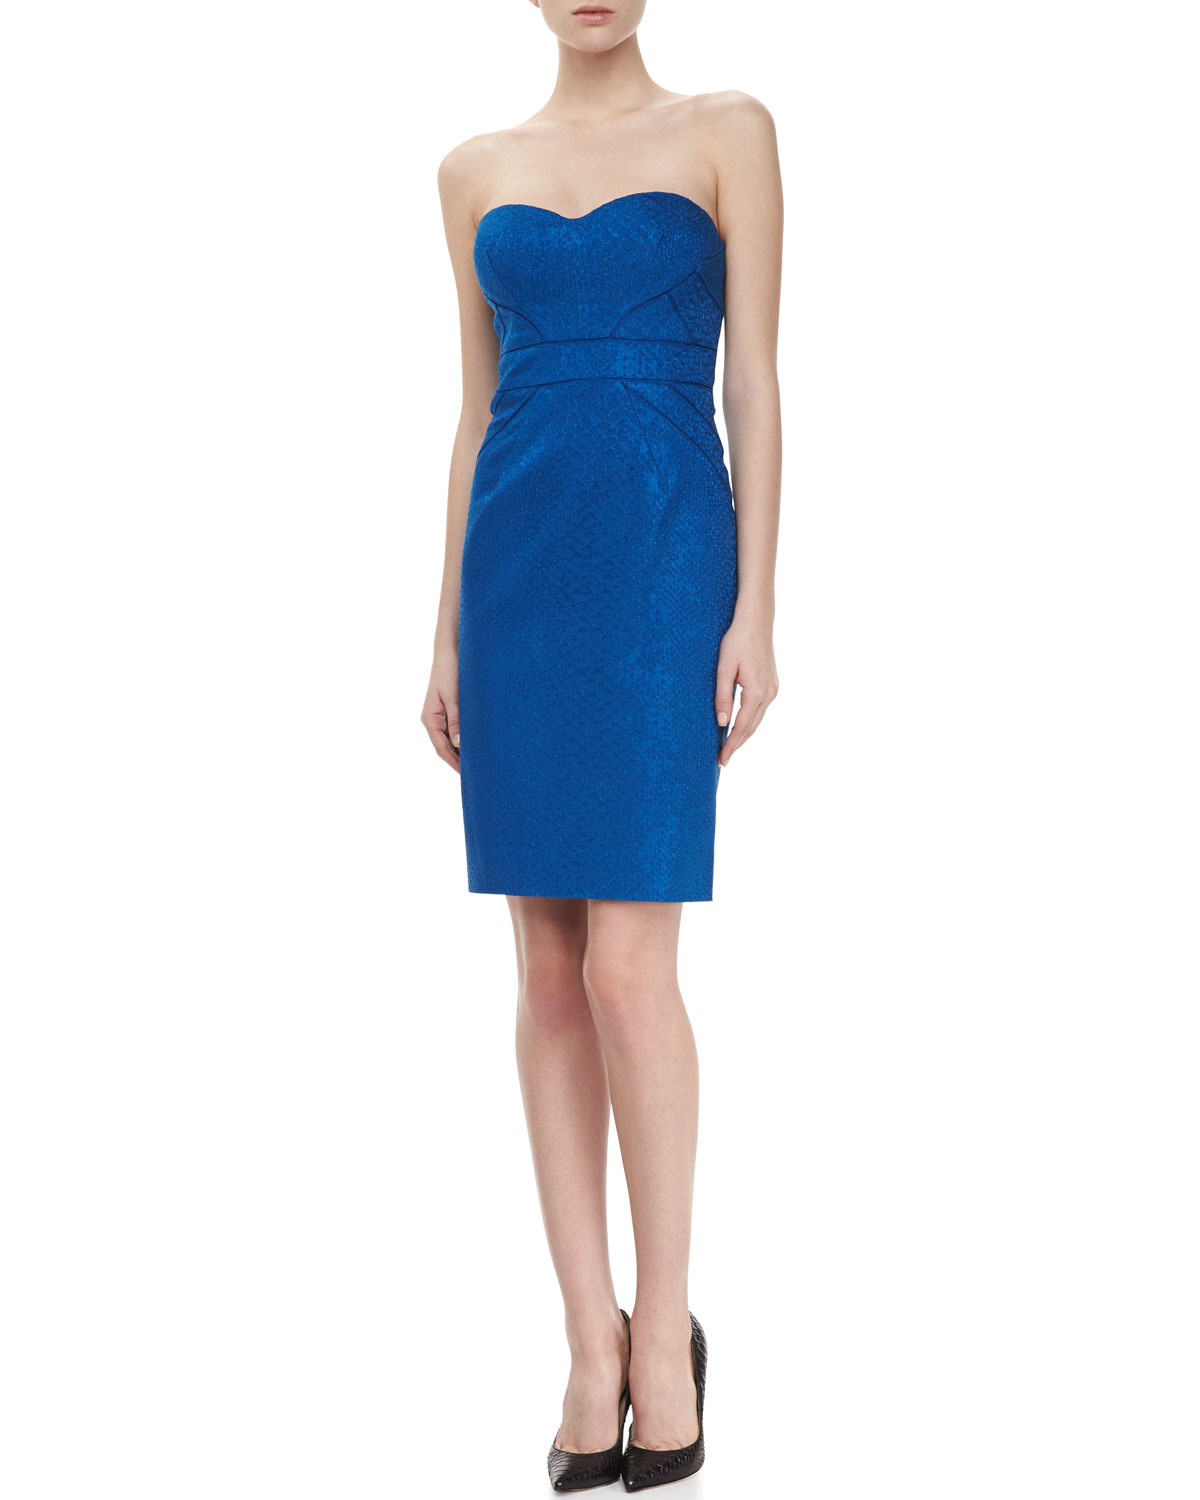 Zac Posen Cocktail Dresses 92